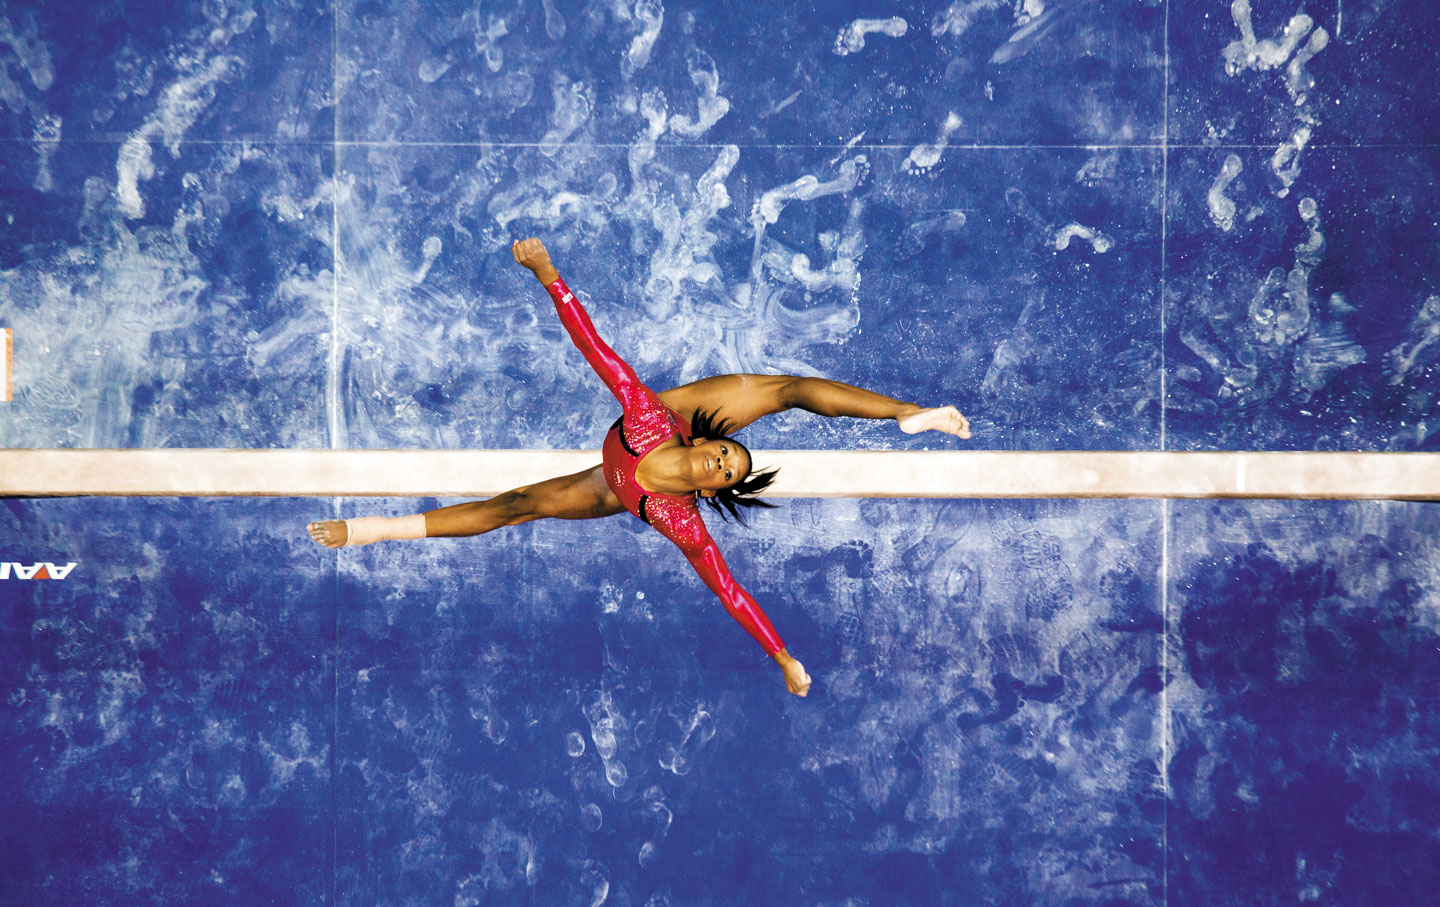 Gabby Douglas at the 2012 Olympic trials in San Jose, California (Peter Read Miller)